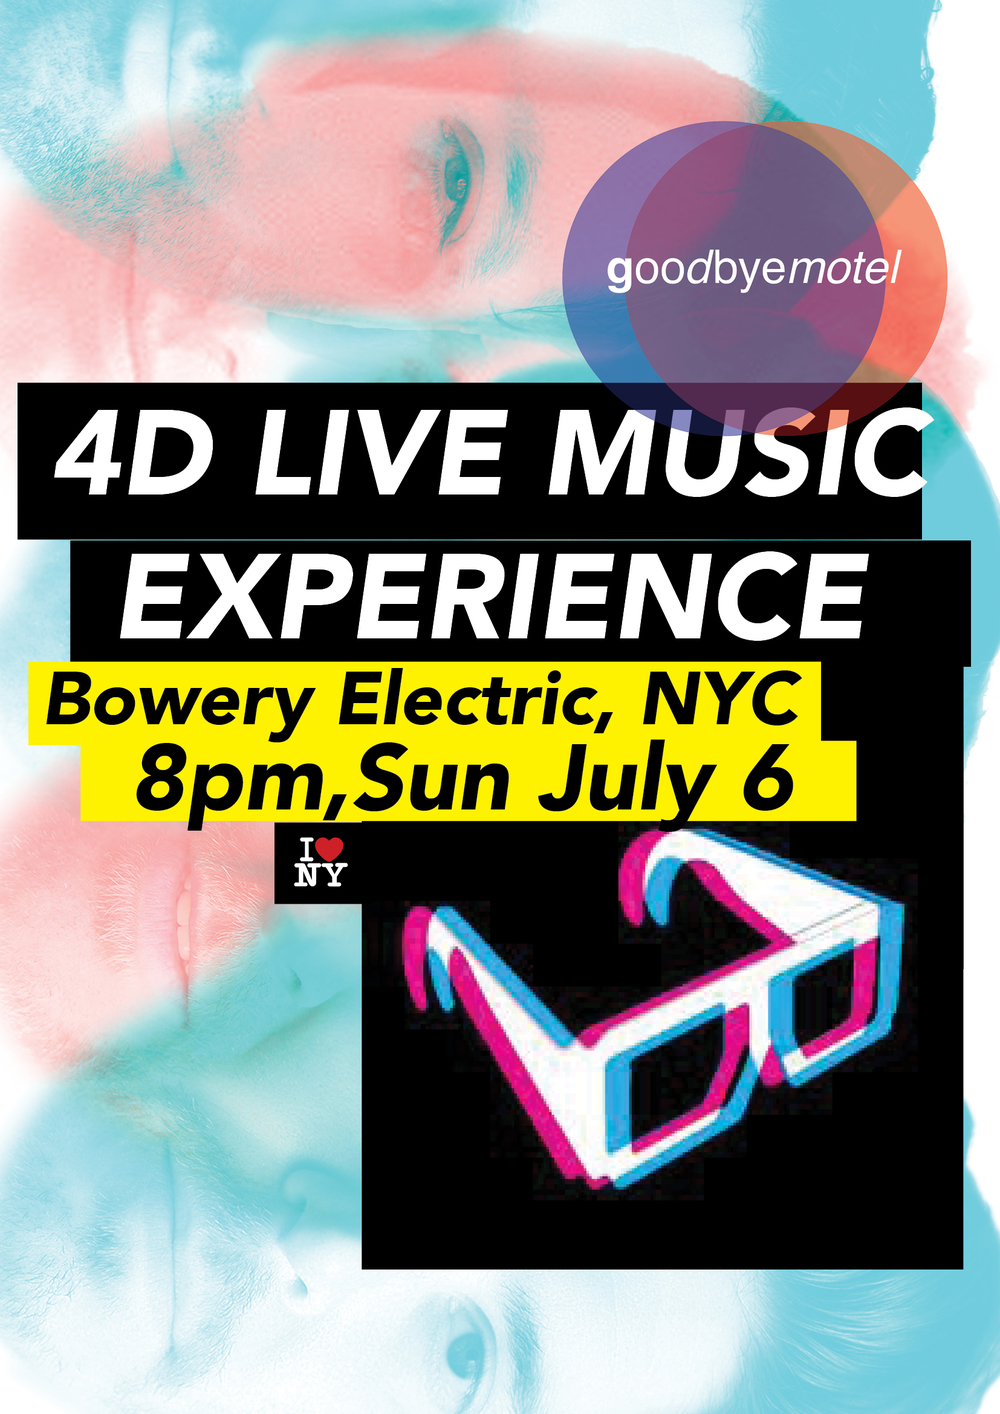 GM bowery electric 4D - 6th July 2014.jpeg